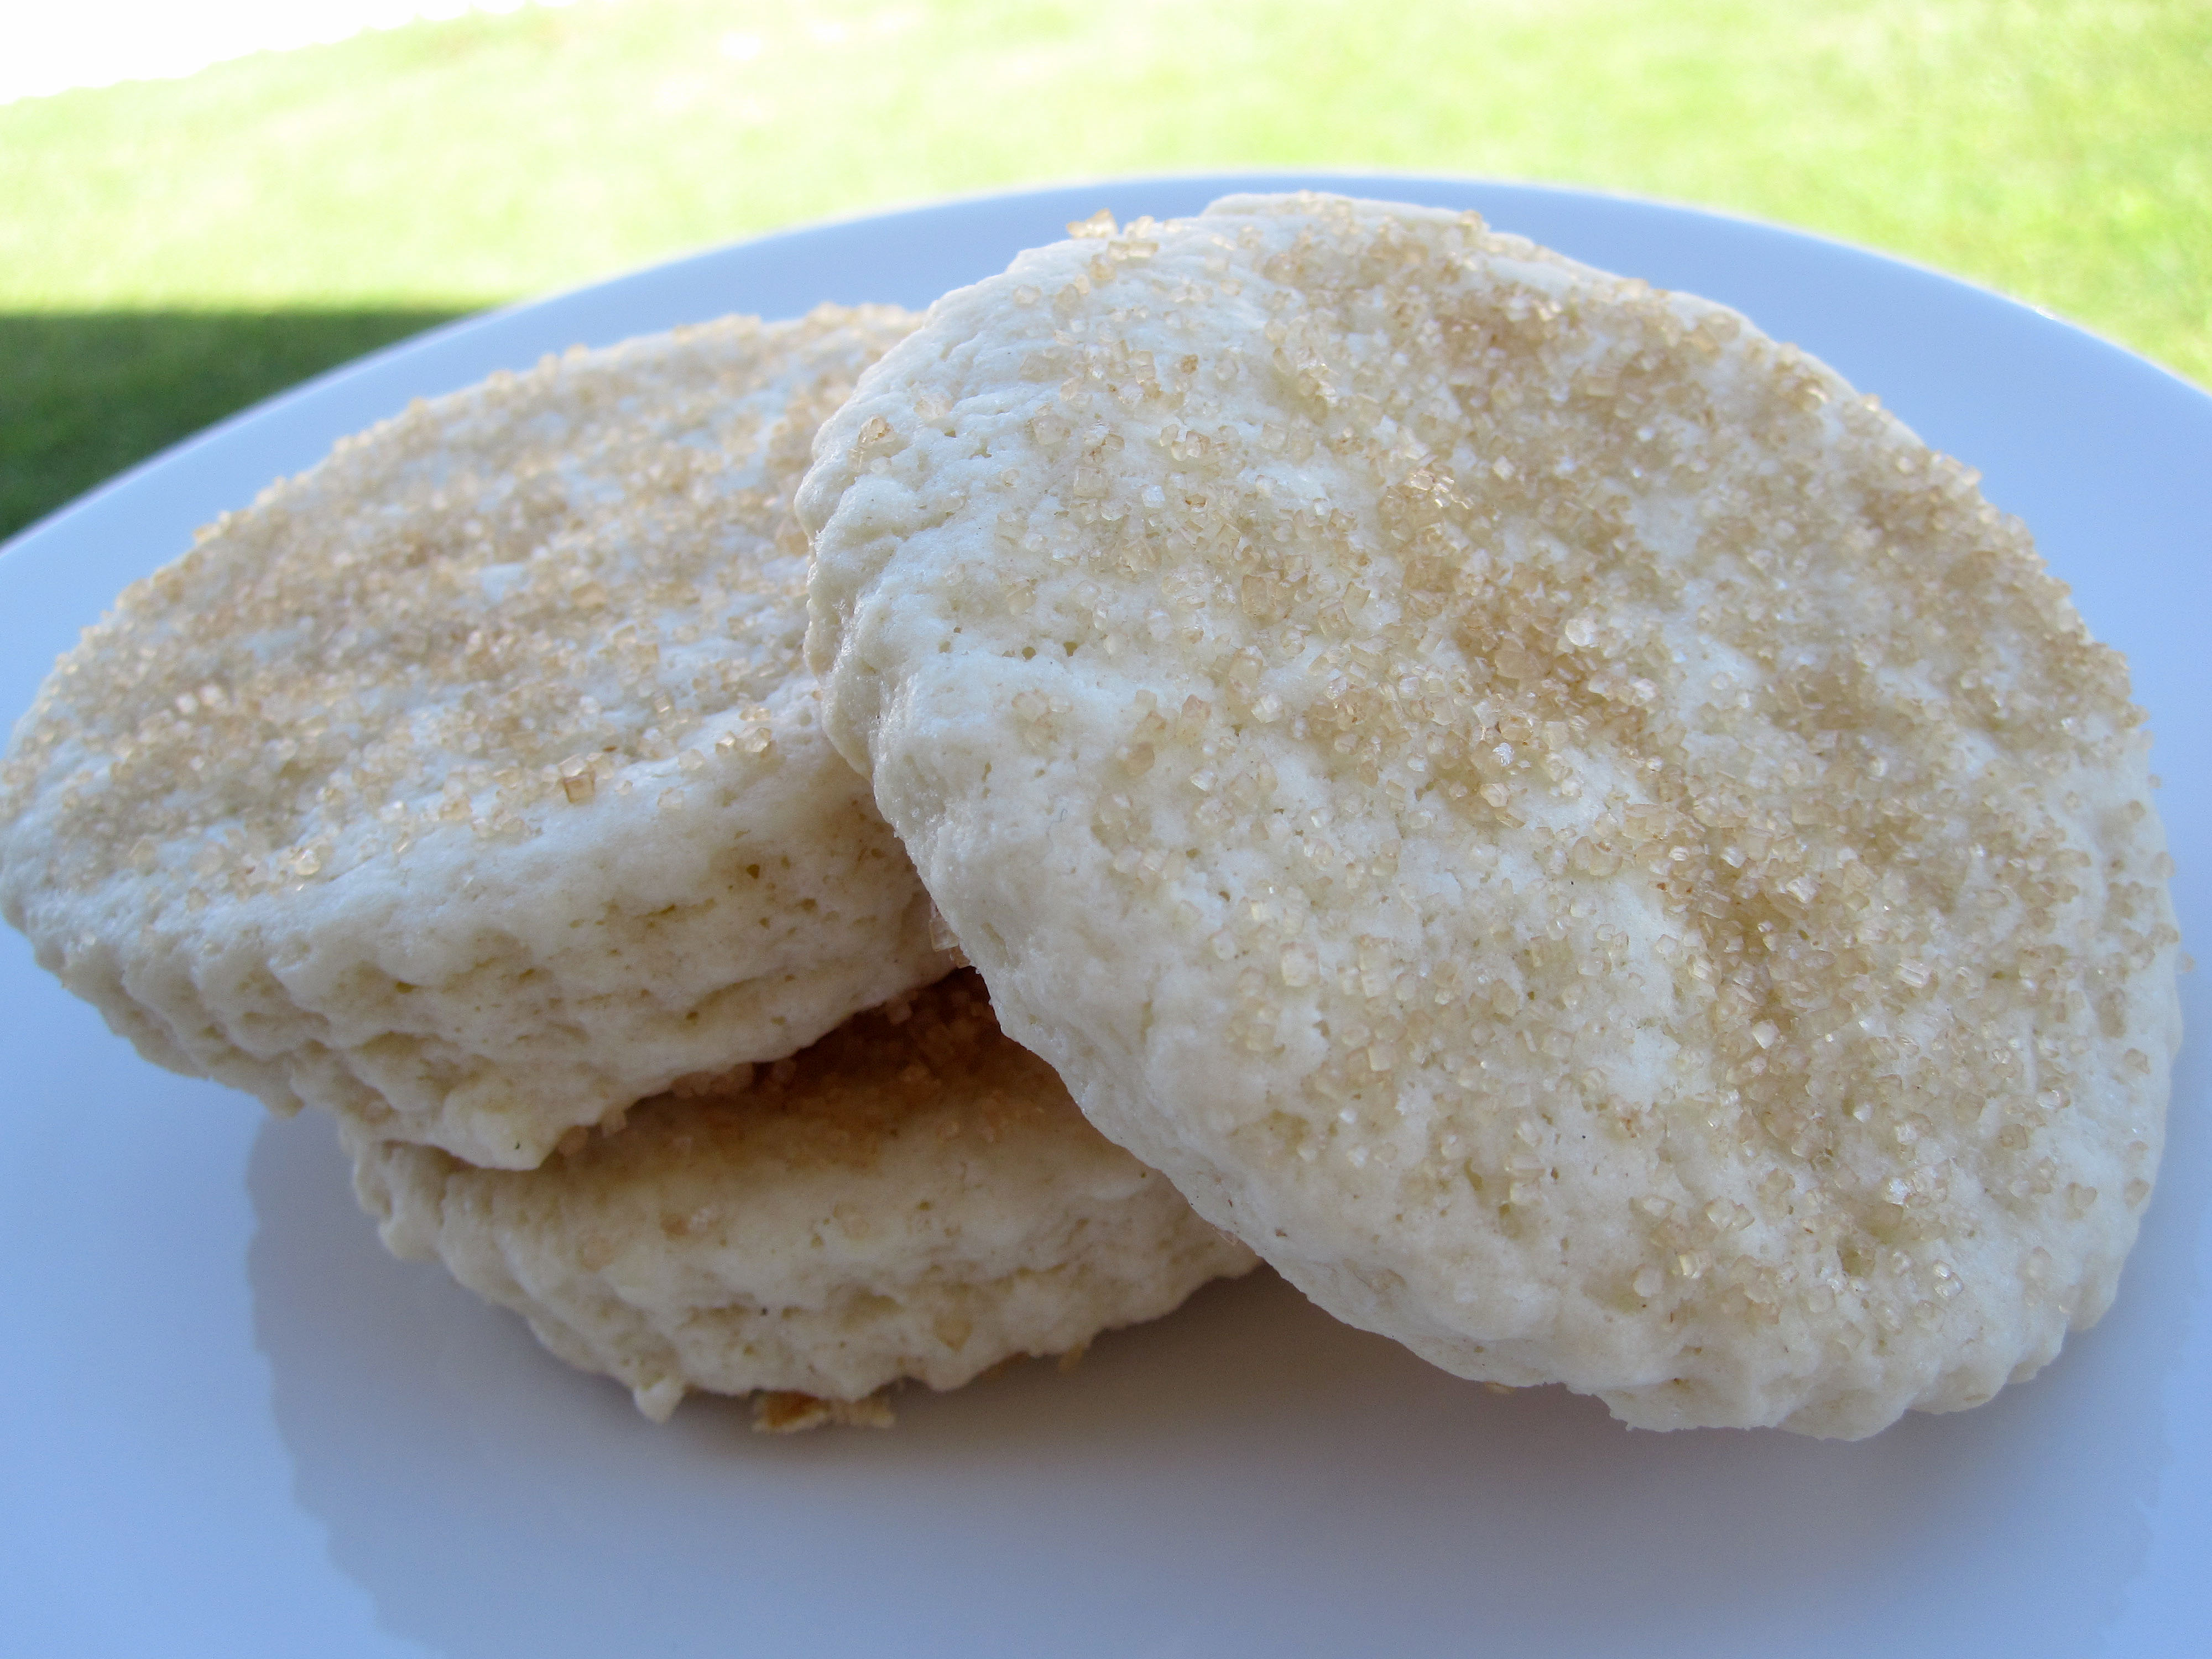 Vegan MoFo Recipe #11: Lemon Biscuits